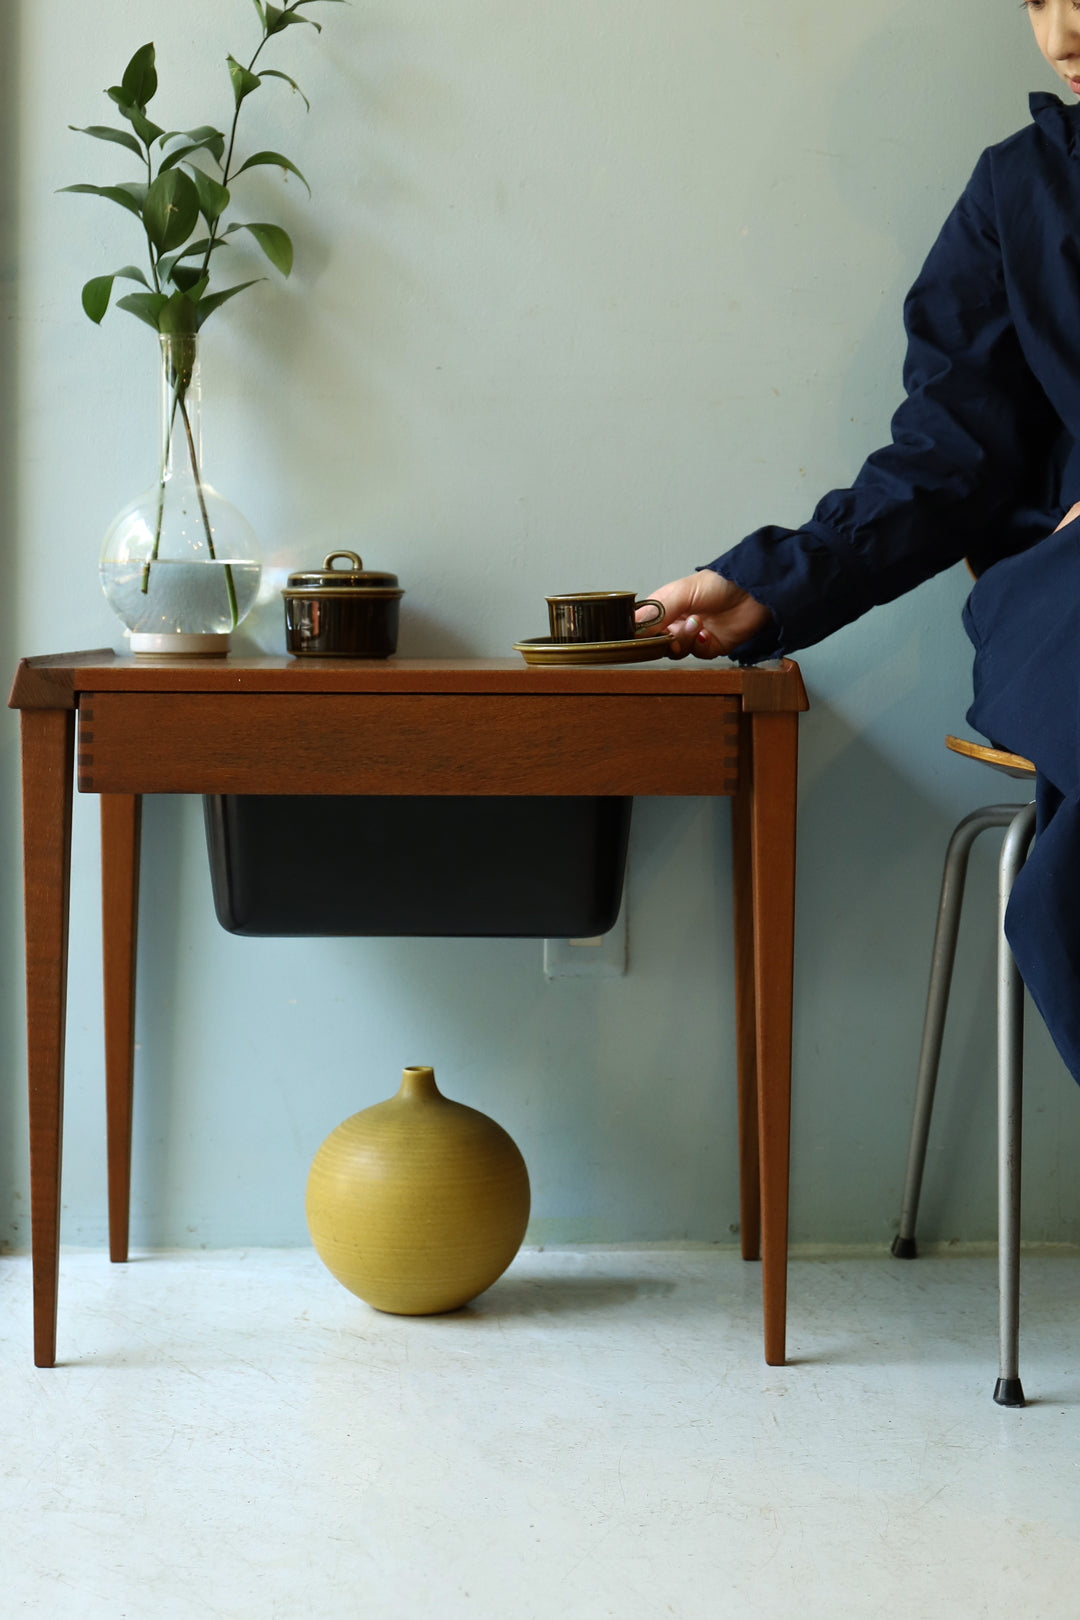 Danish Vintage Sewing Side Table/デンマークヴィンテージ ソーイングテーブル チーク材 モダンデザイン 北欧家具